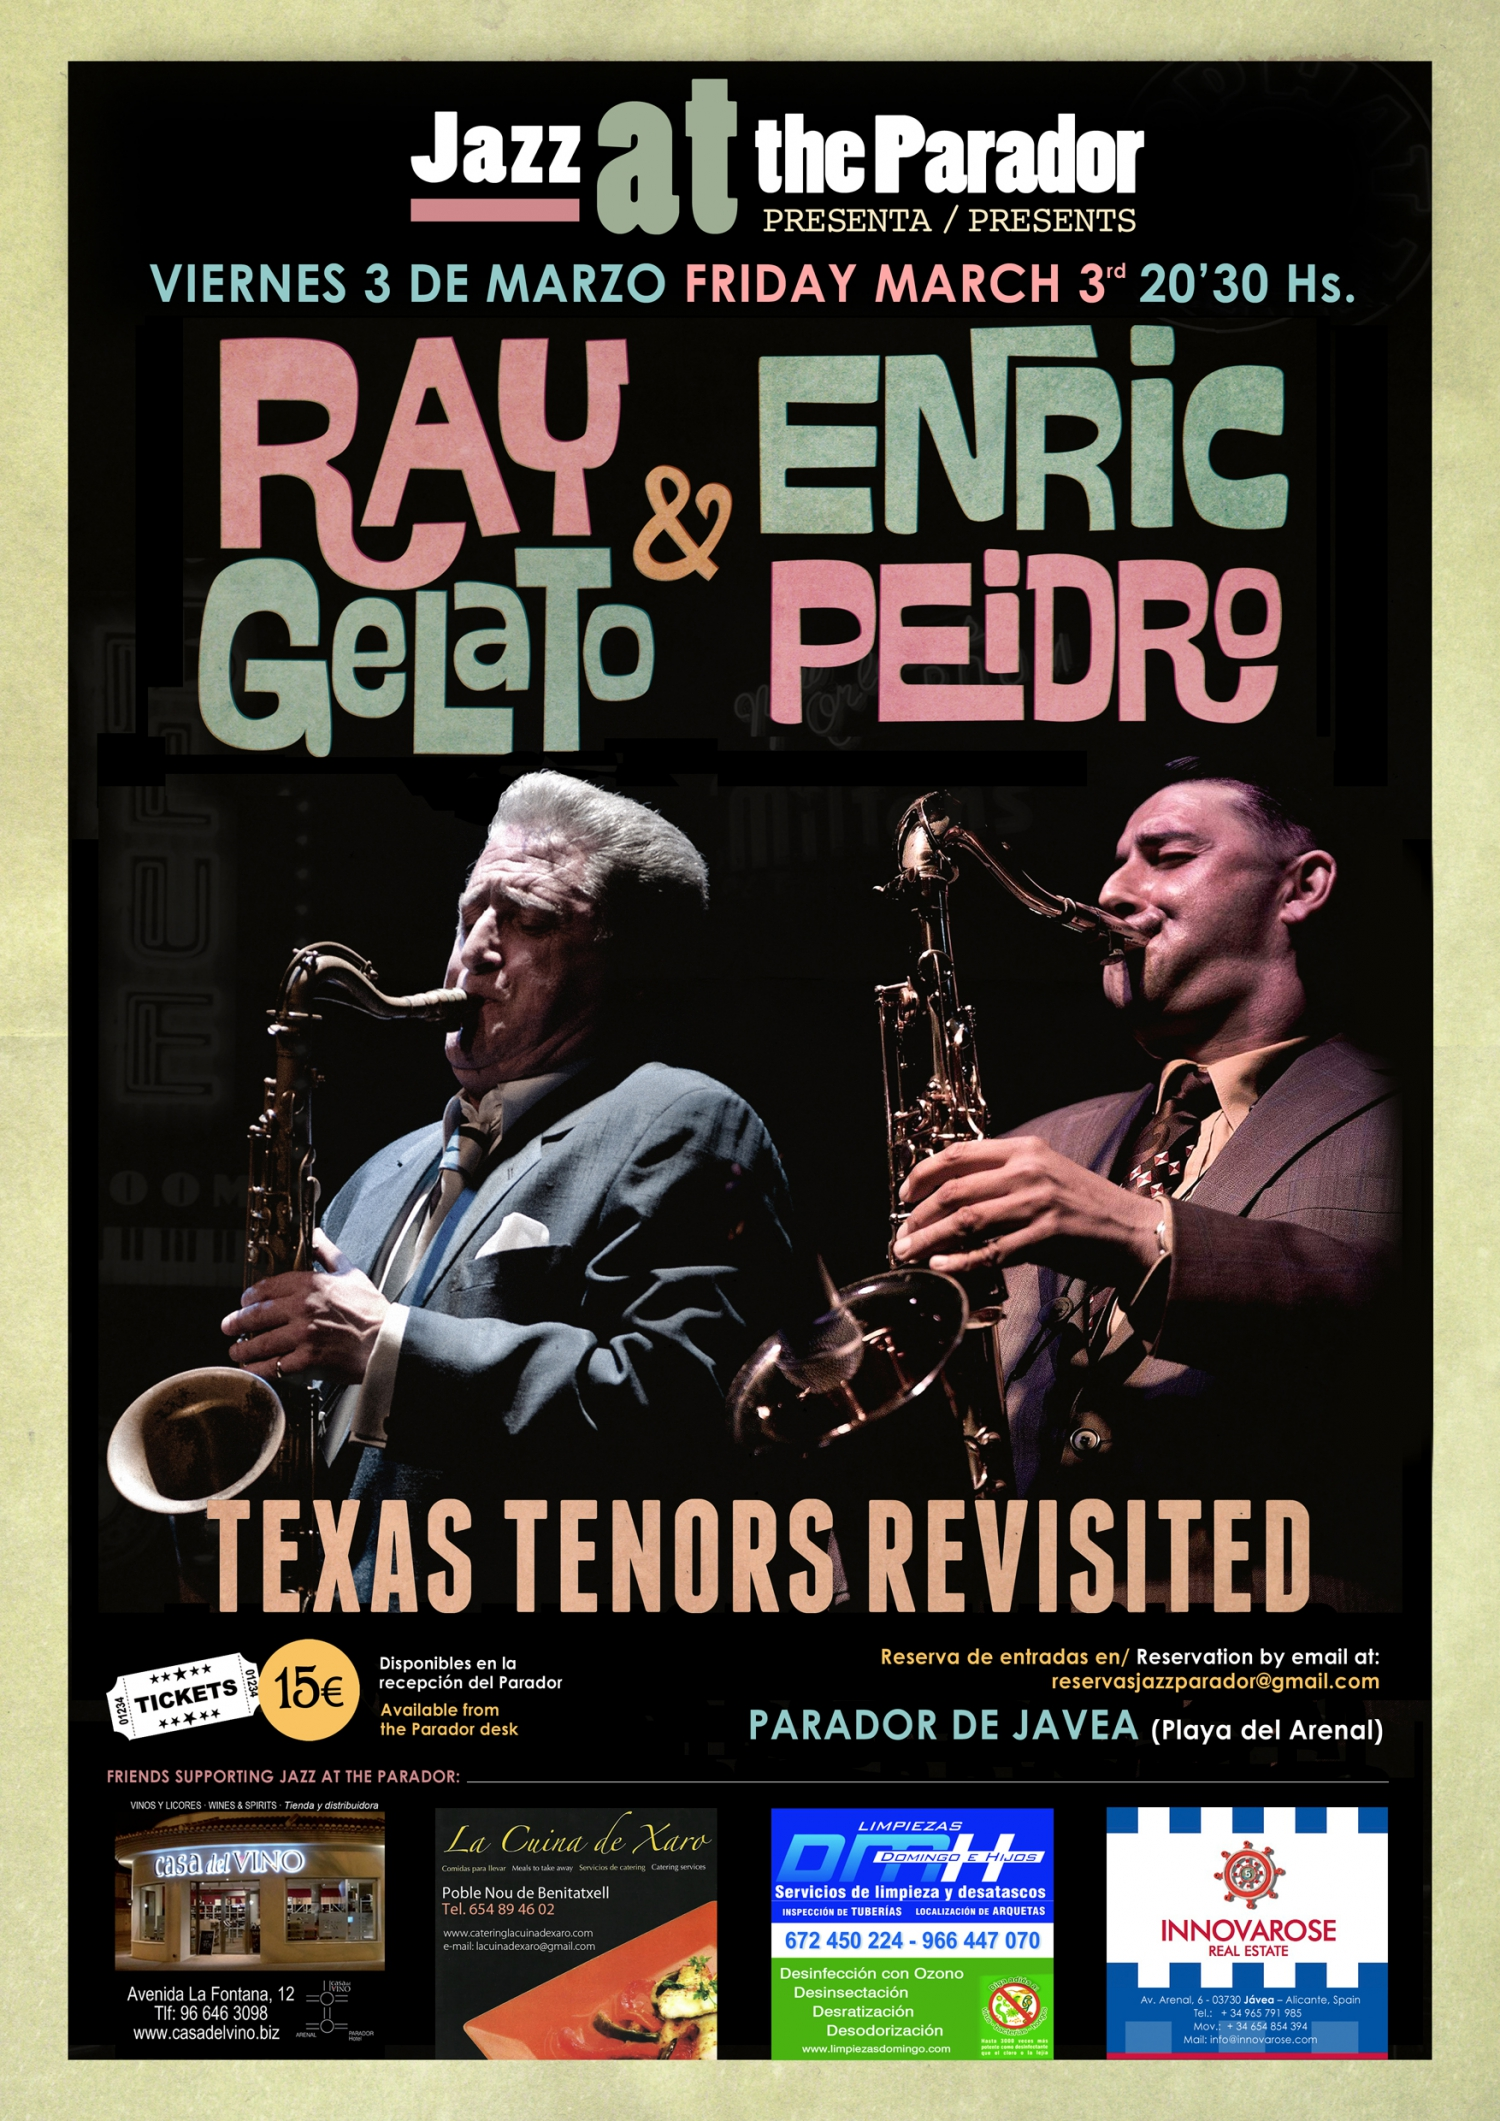 RAY GELATO & ENRIC PEIDRO 'Texas Tenors Revisited'